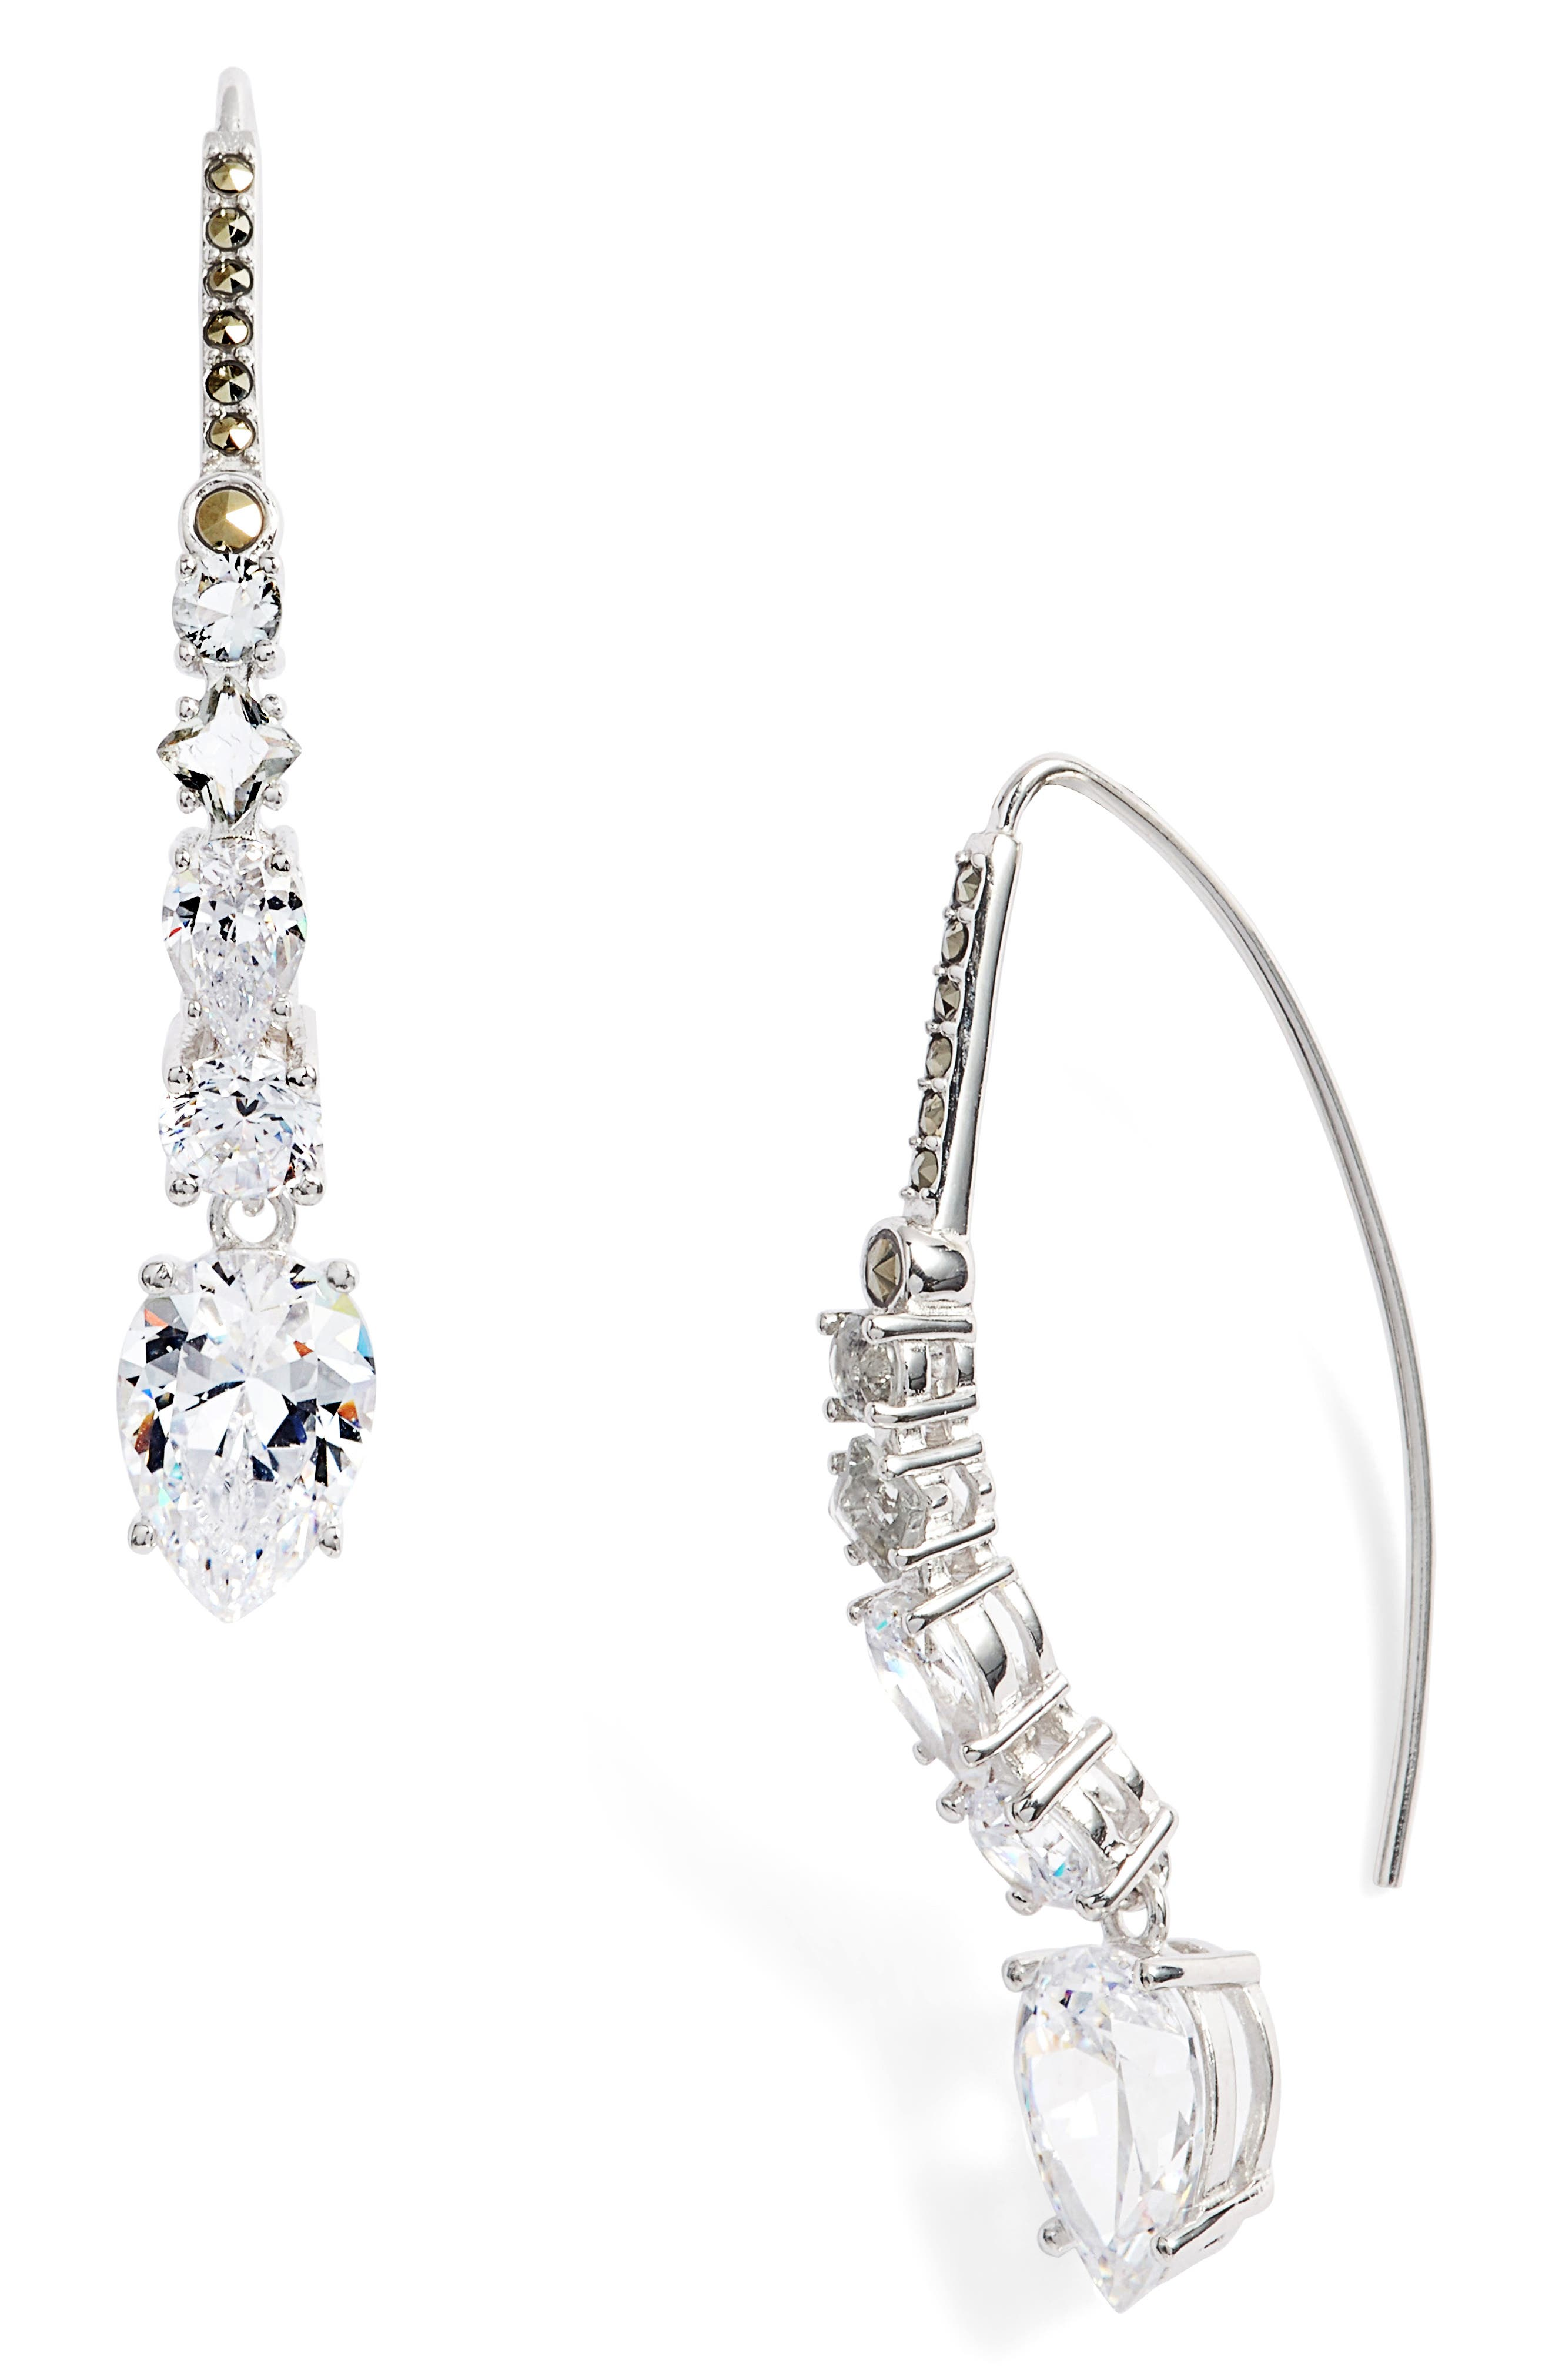 Cubic Zirconia Threader Earrings,                         Main,                         color, Silver